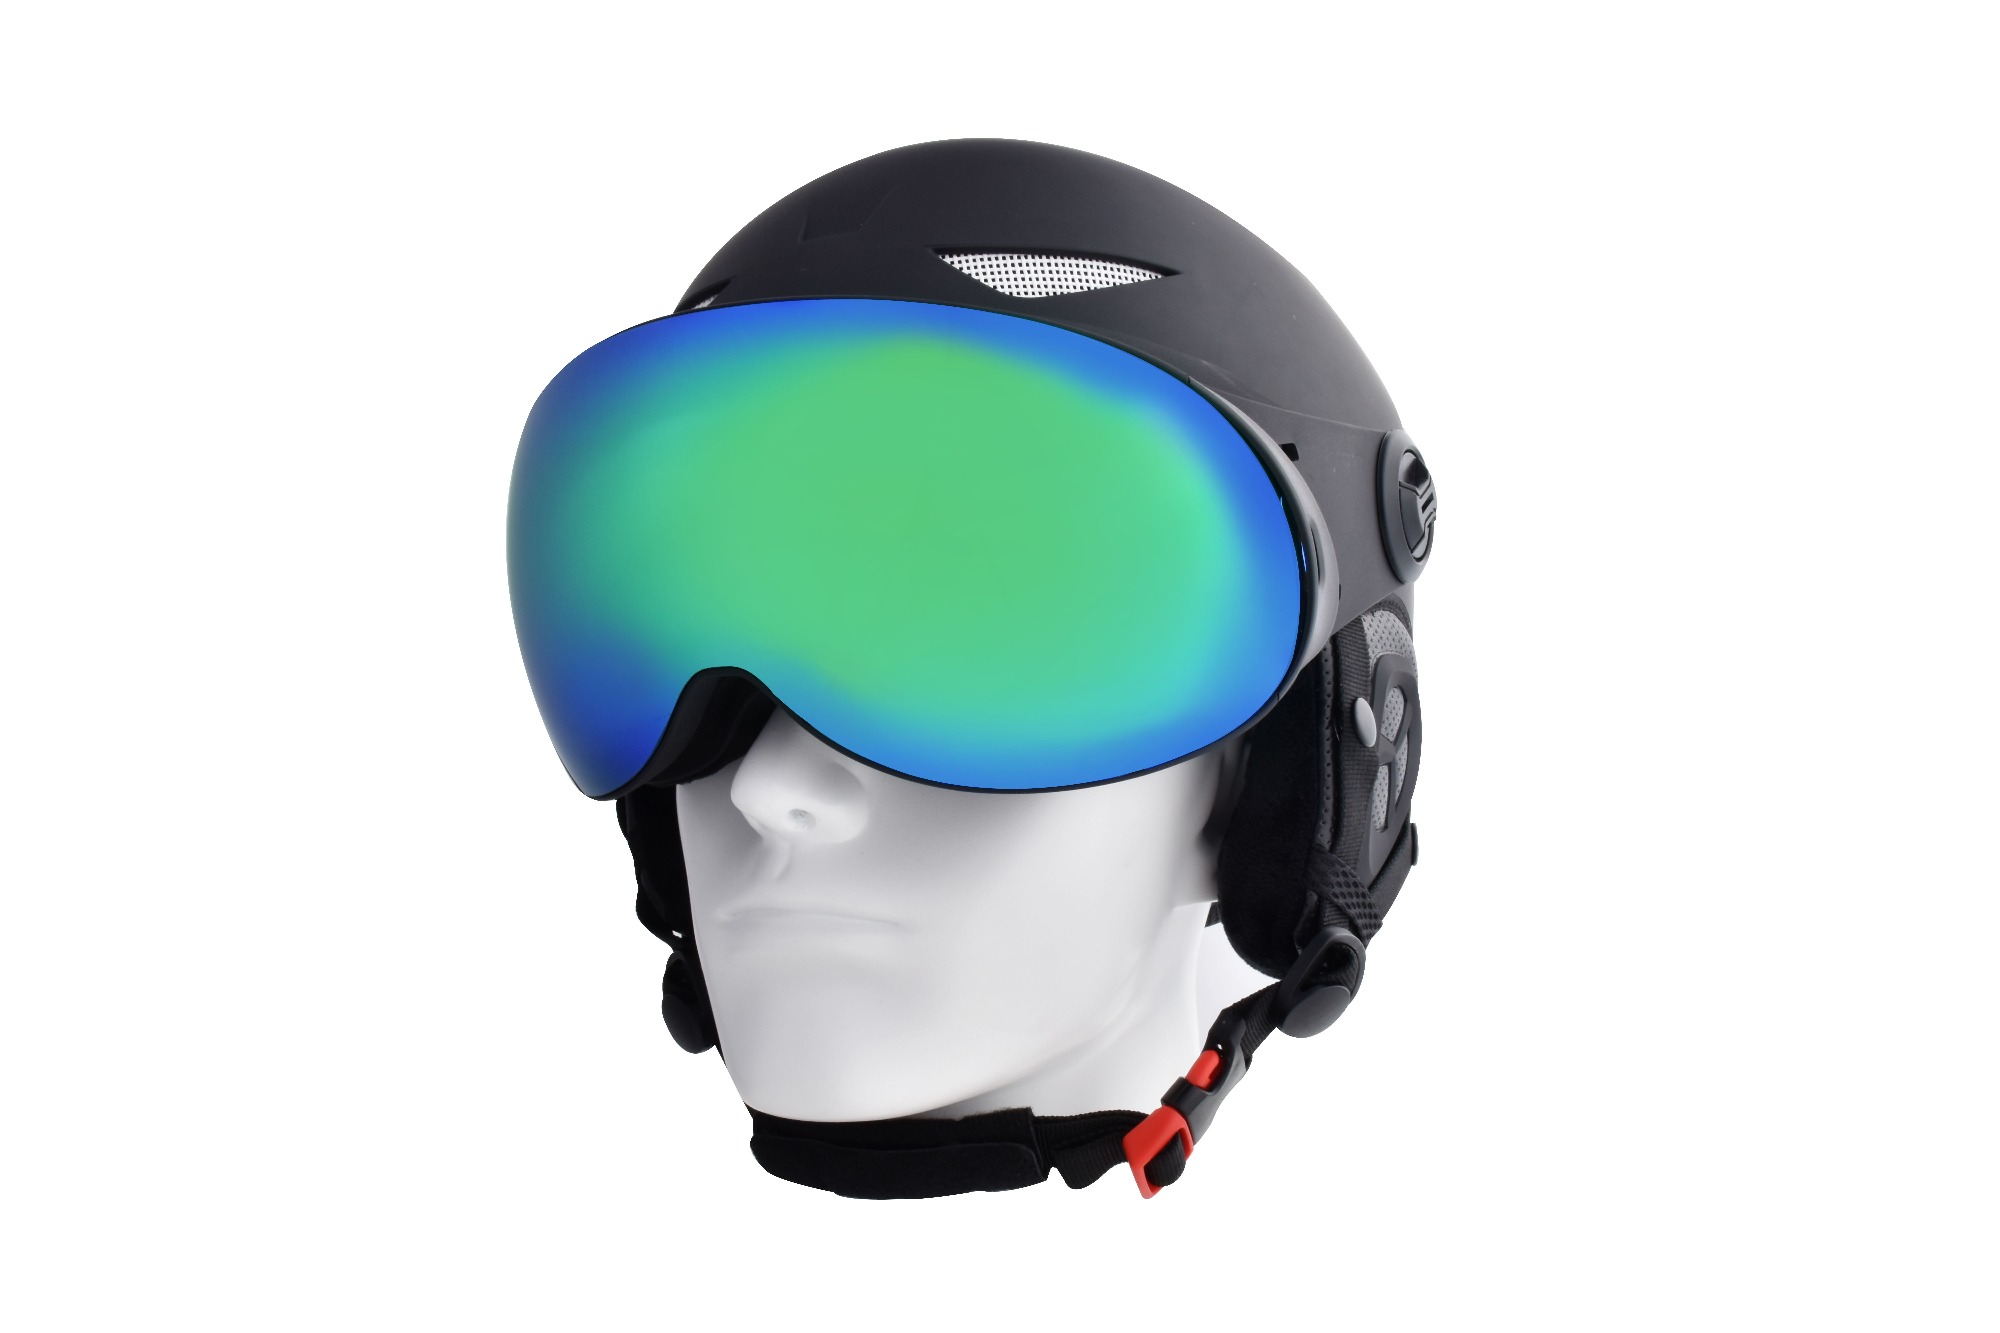 About the ski helmet